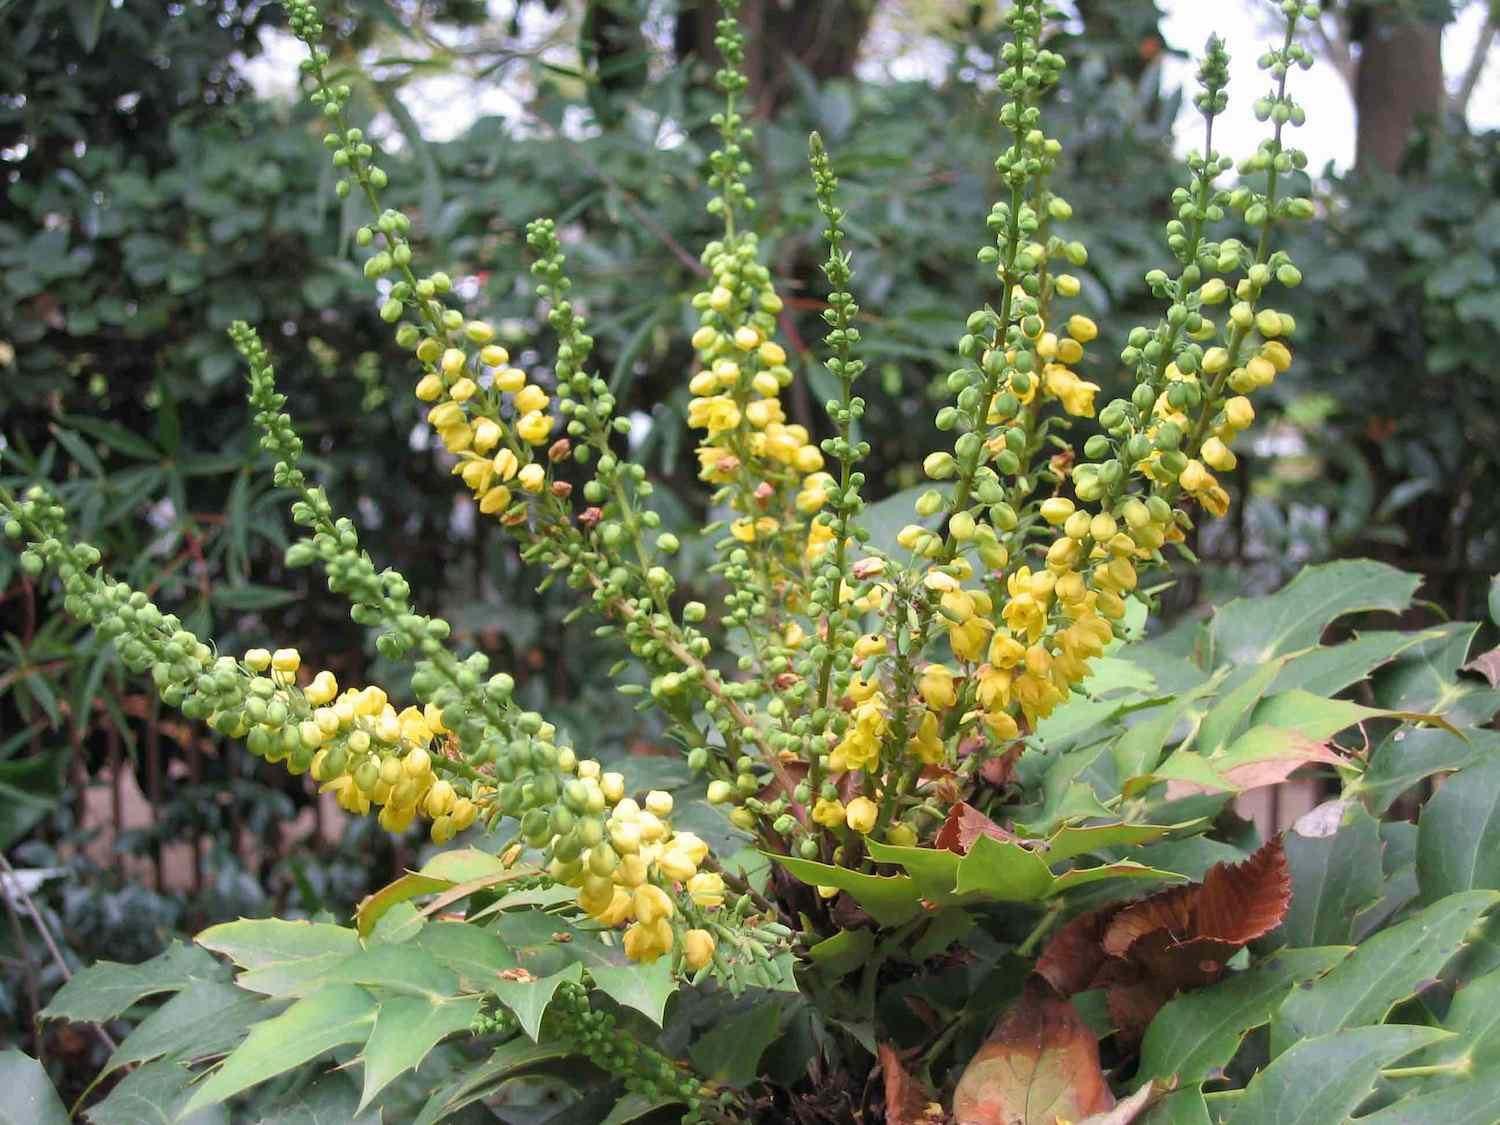 Green and yellow flowers of the leatherleaf mahonia plant grow out of a bed of green leaves